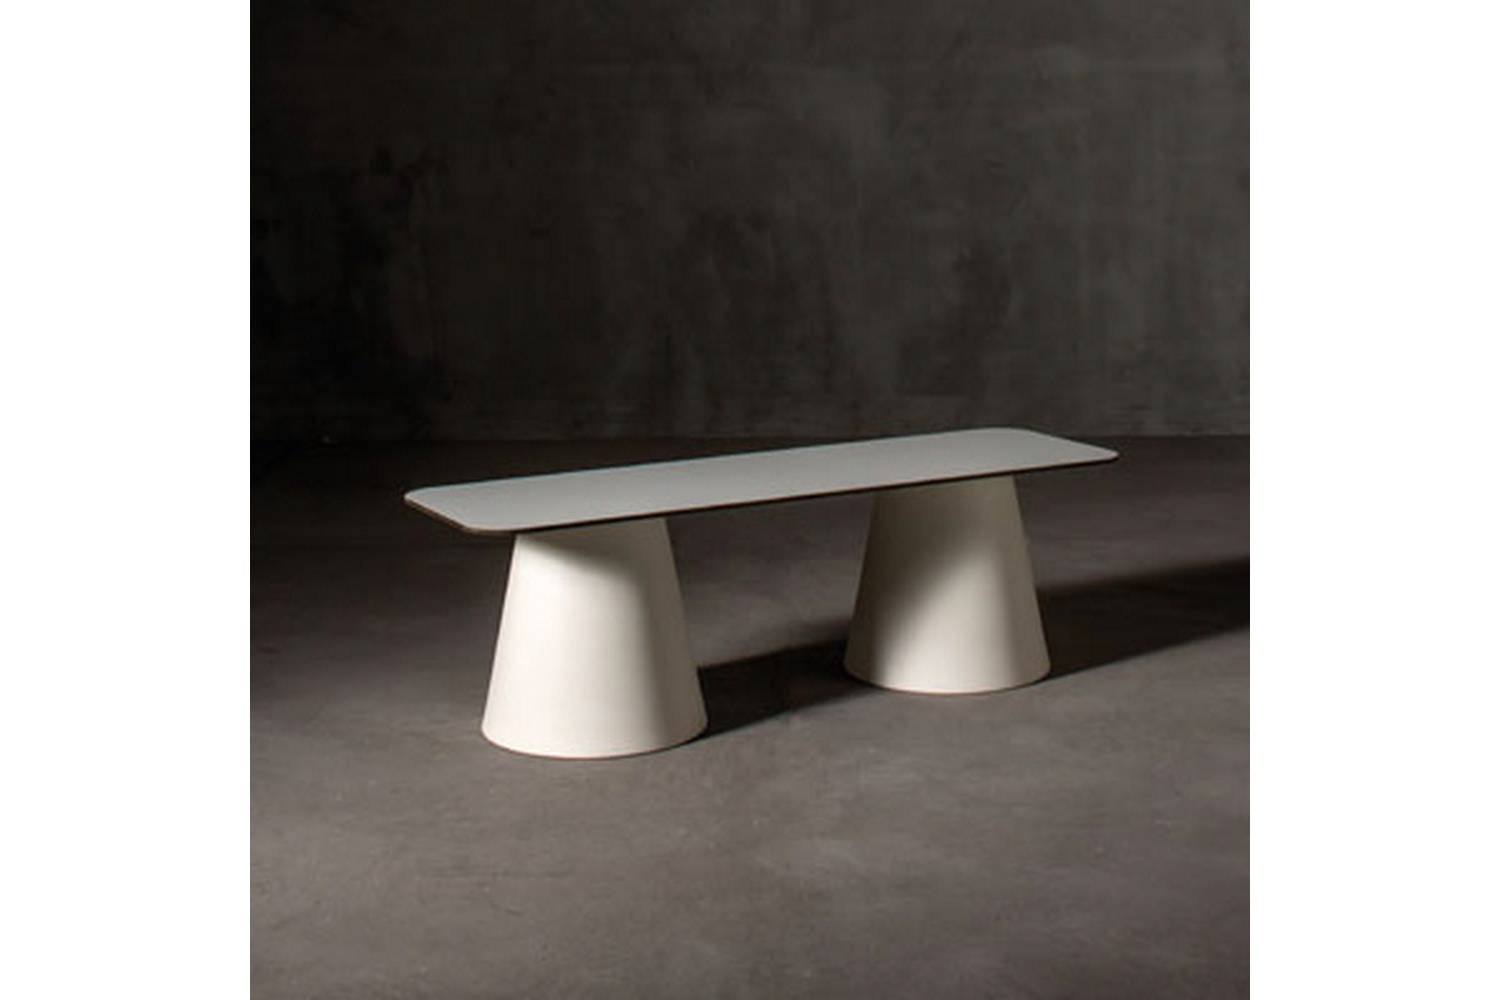 LouLou Bench by Raffaella Mangiarotti for Serralunga